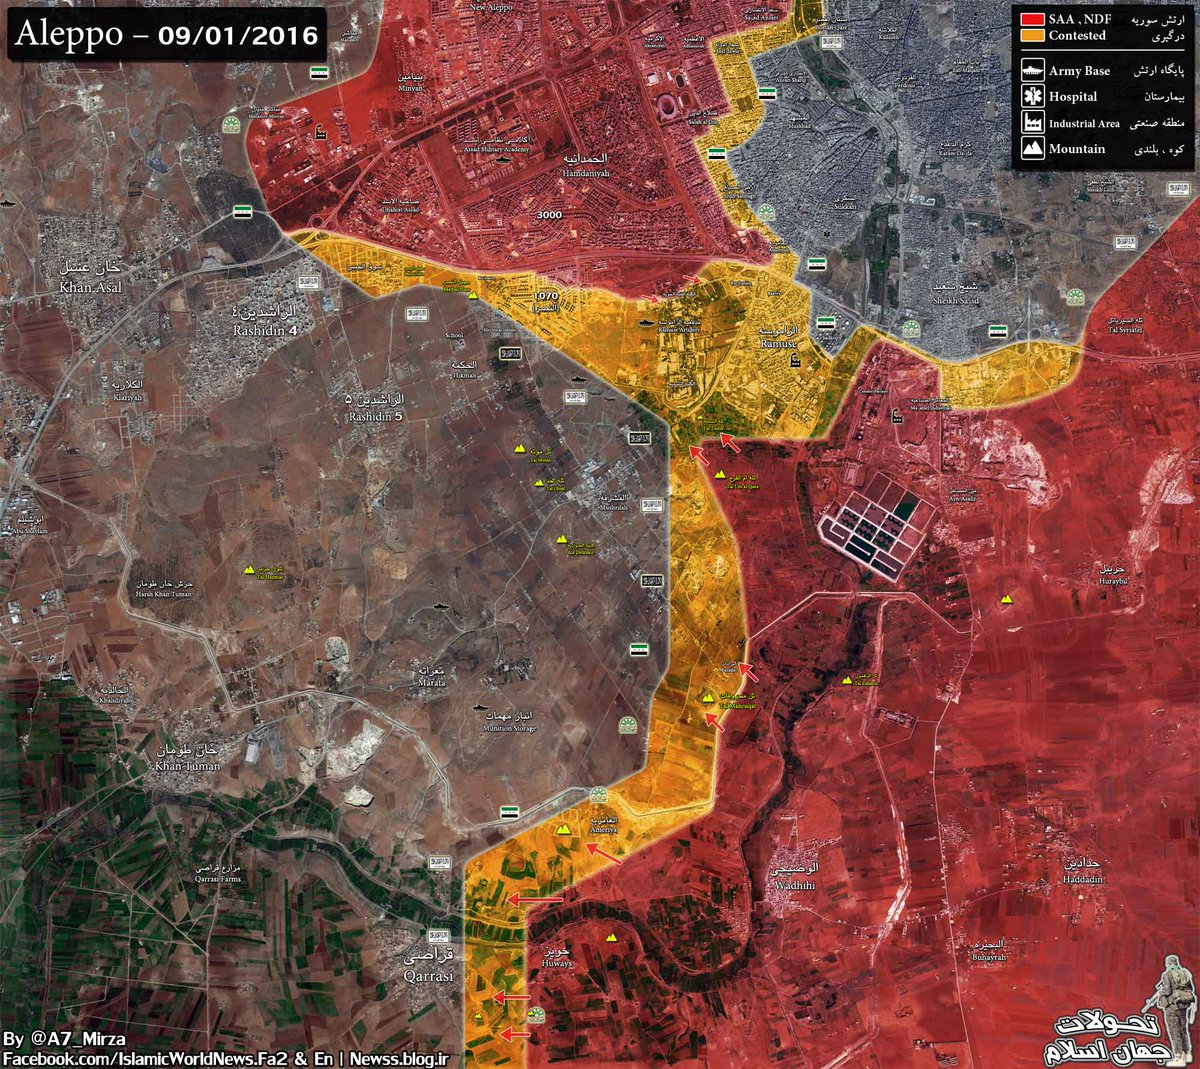 Overview of Military Situation in Aleppo City on September 1, 2016